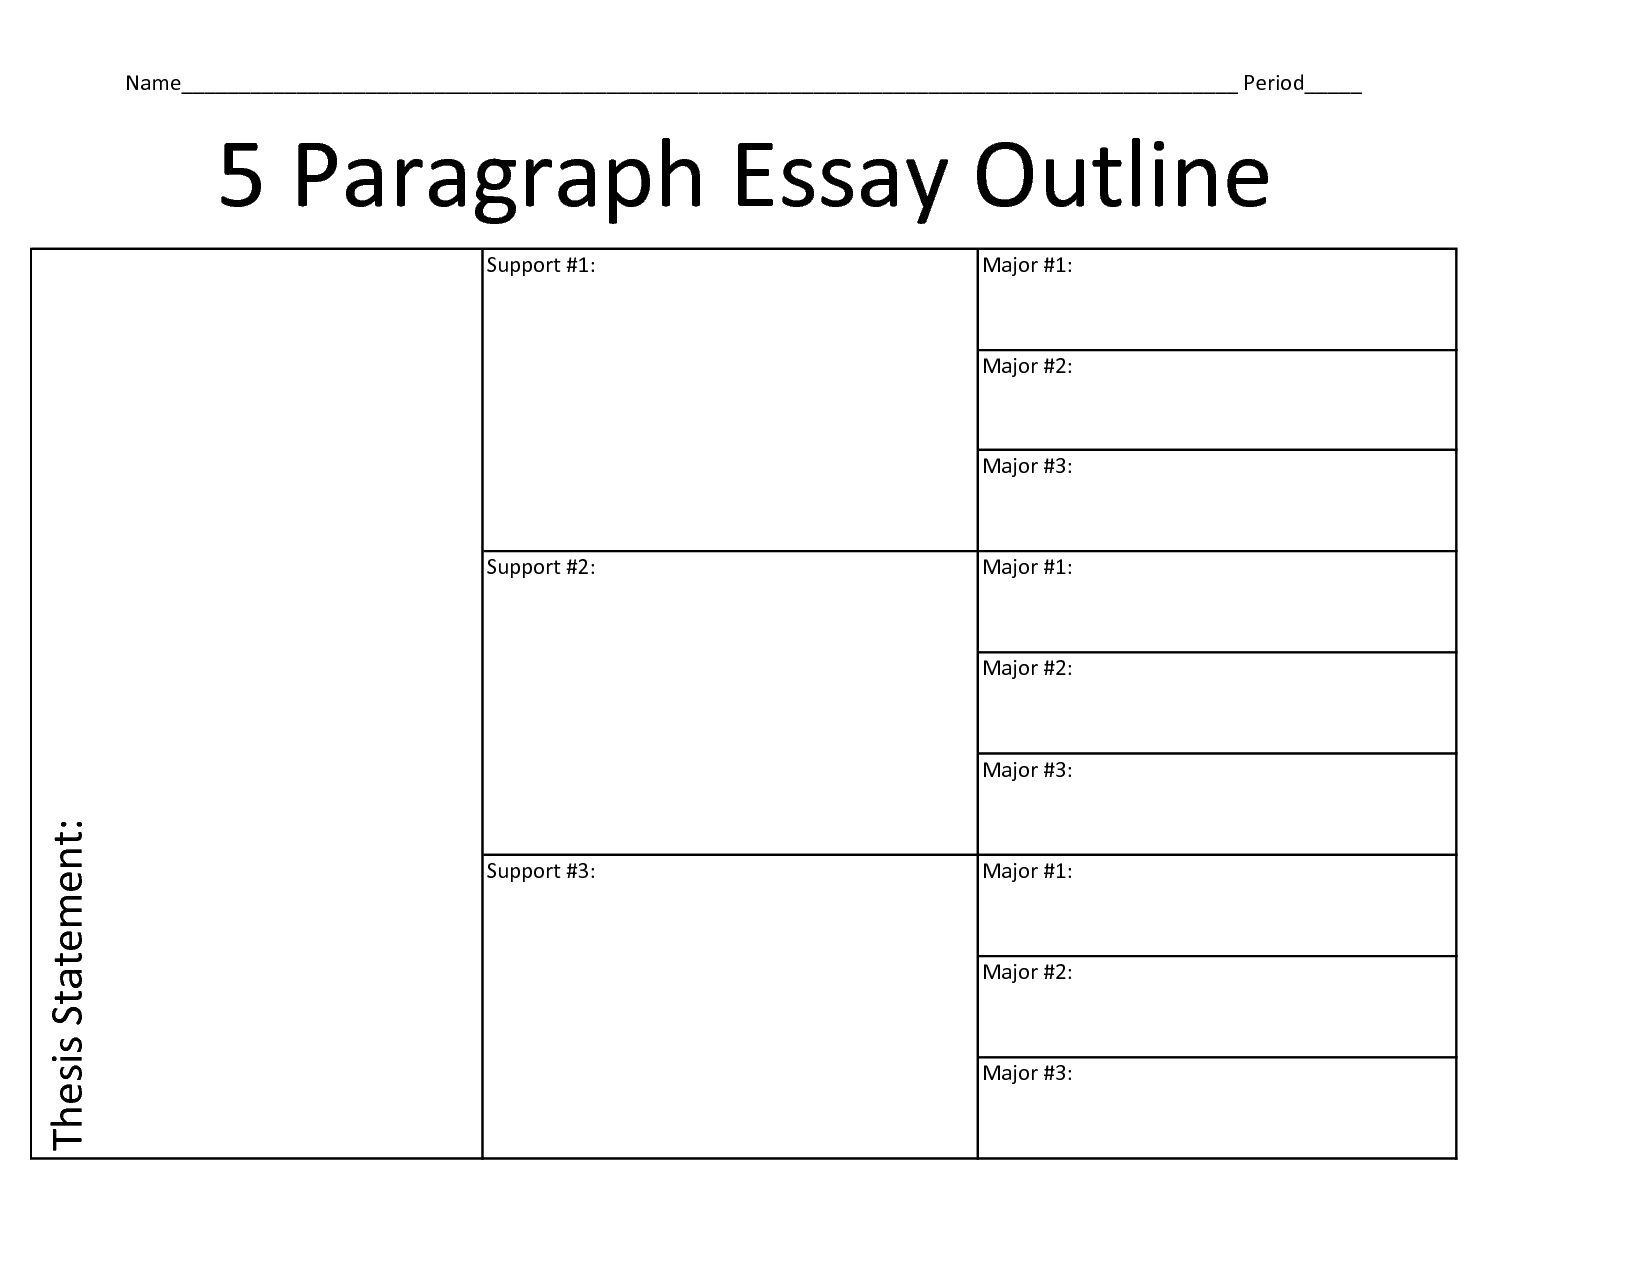 019 Graphic Organizers Executive Functioning Mr Brown039s Paragraph Essay Outline L Amazing 5 Template Pdf Free Full